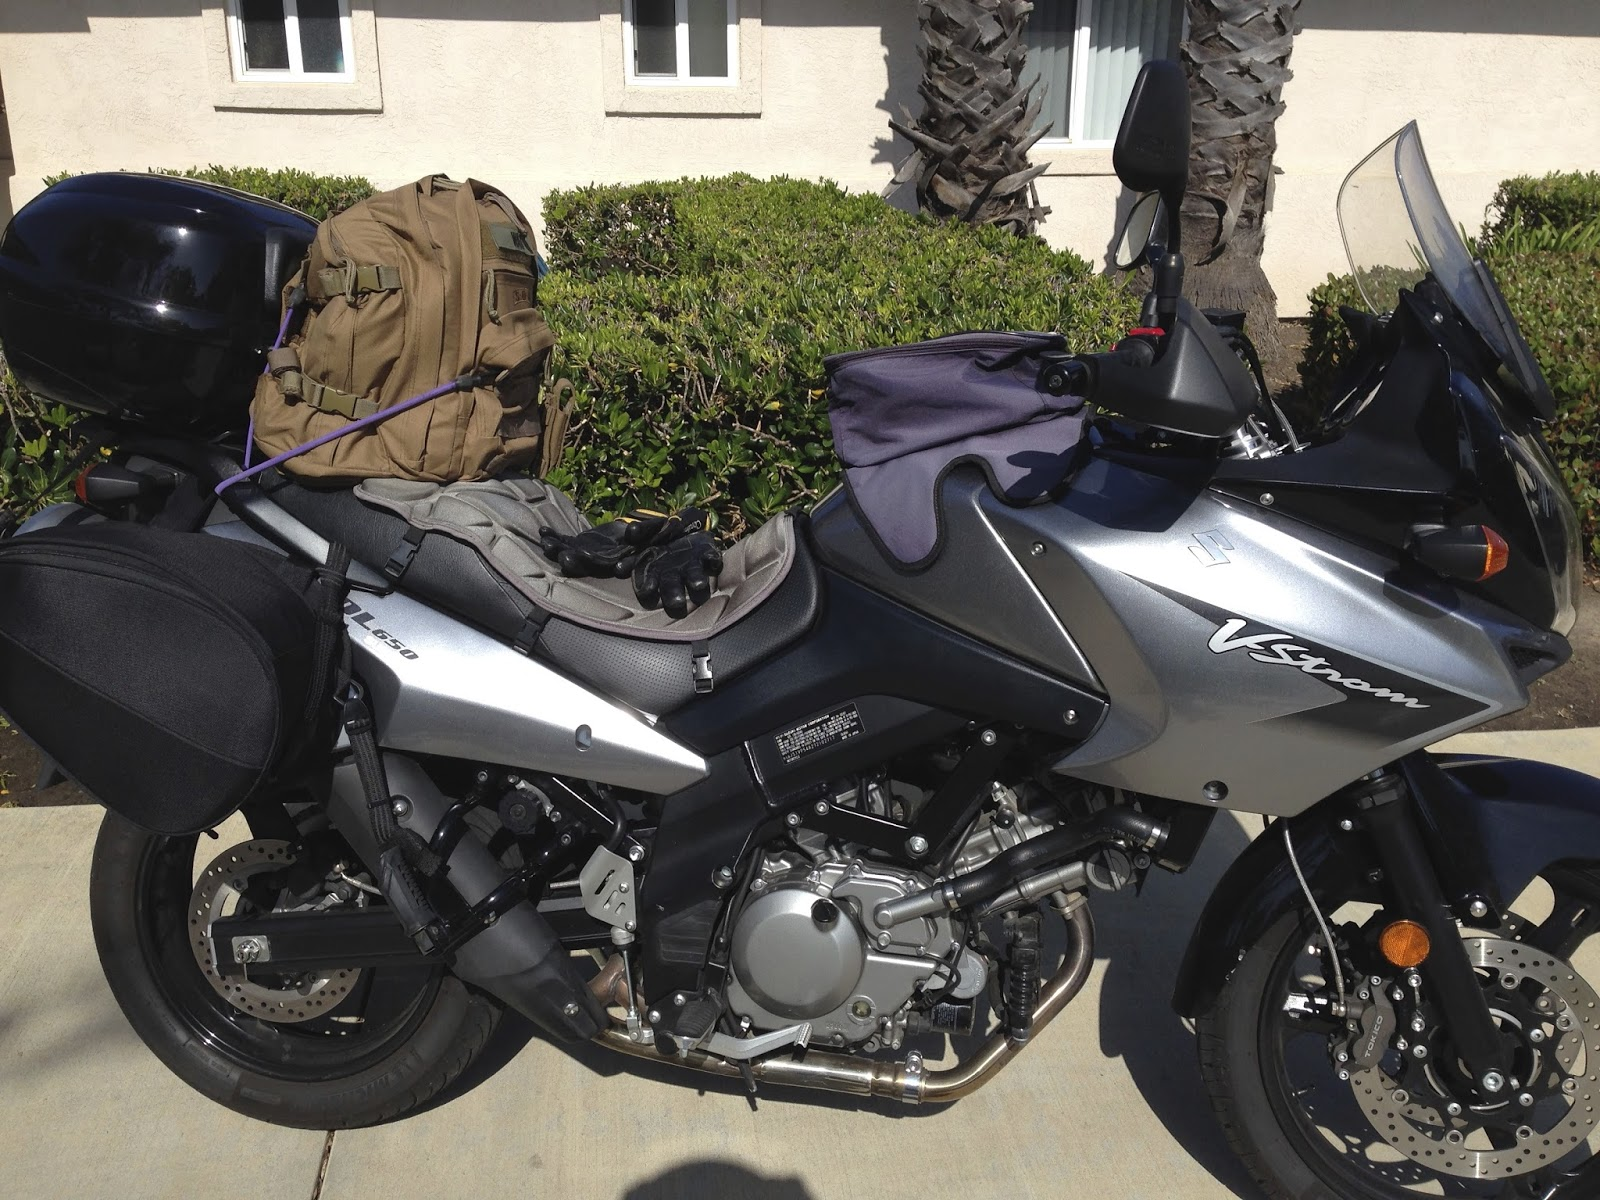 Motorcycle Tour Luggage combos